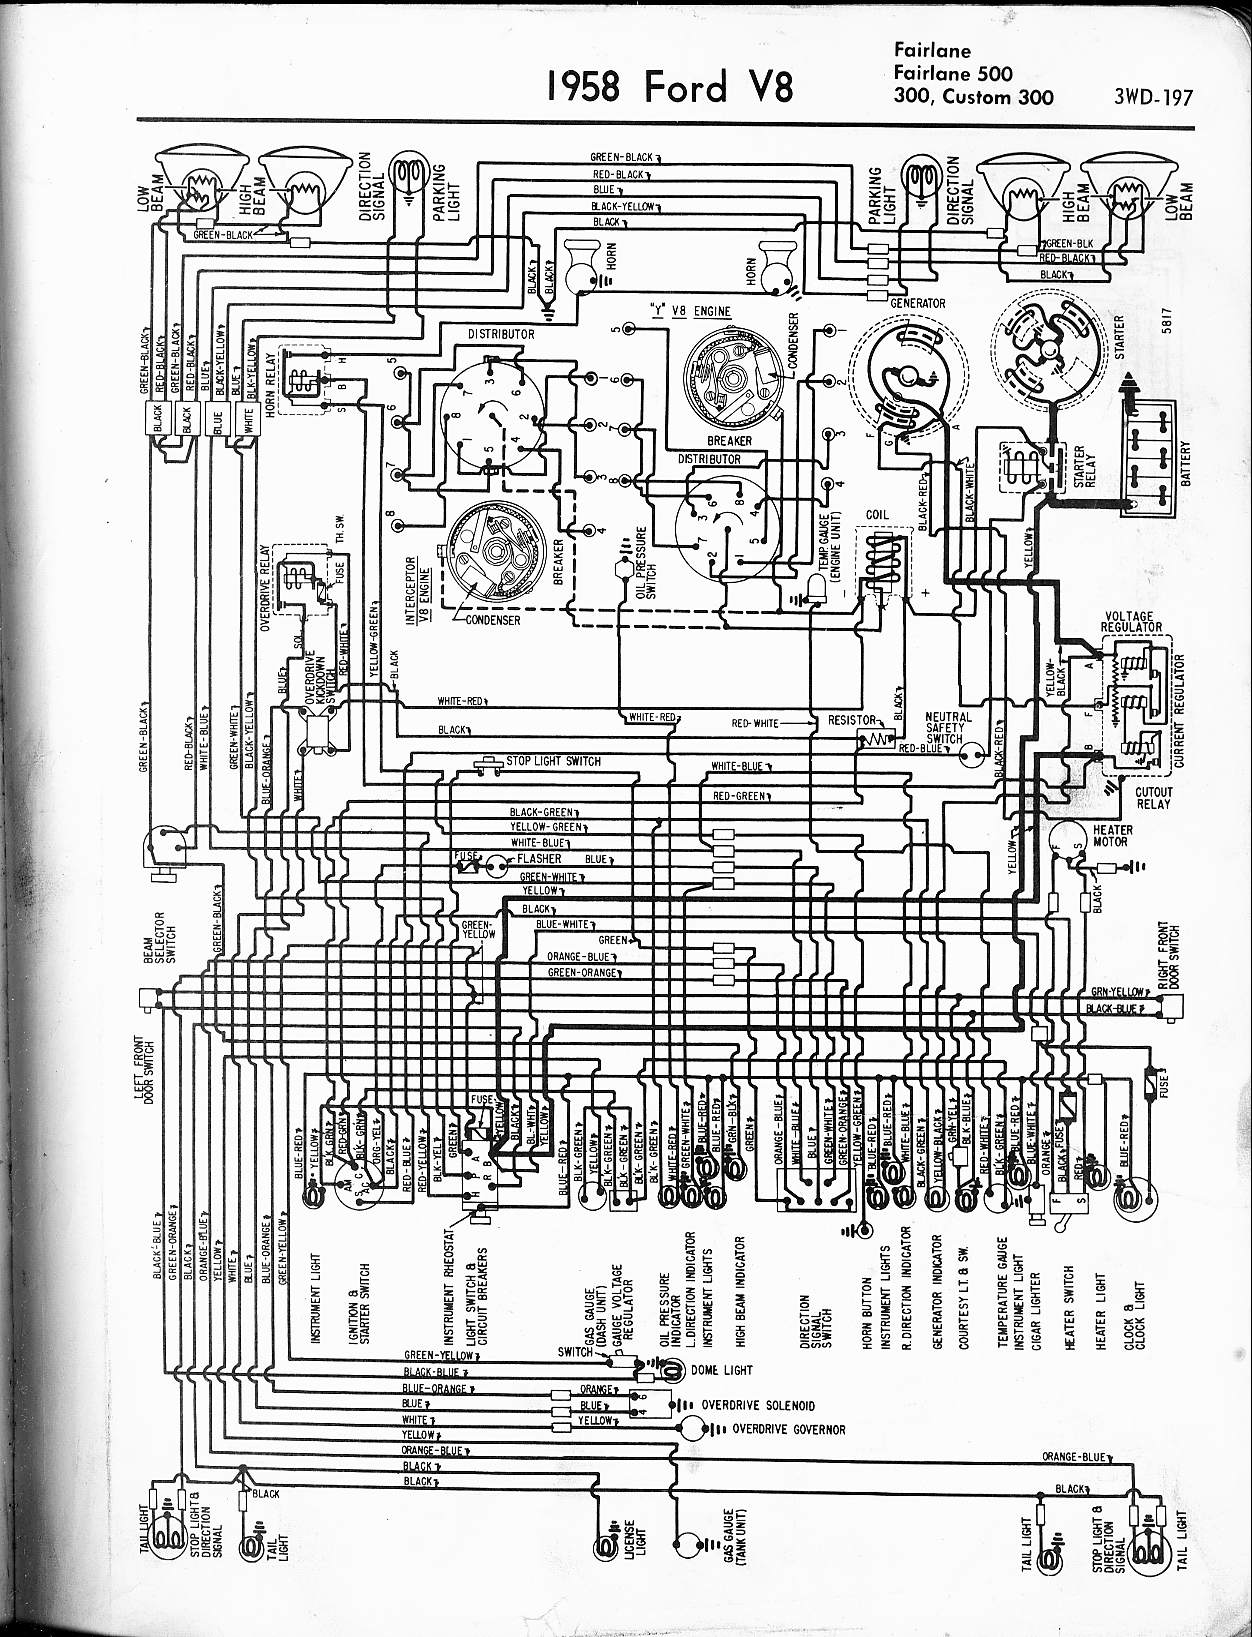 1958 Ford Wiring Diagram Trusted Schematics 1996 Toyota Land Cruiser